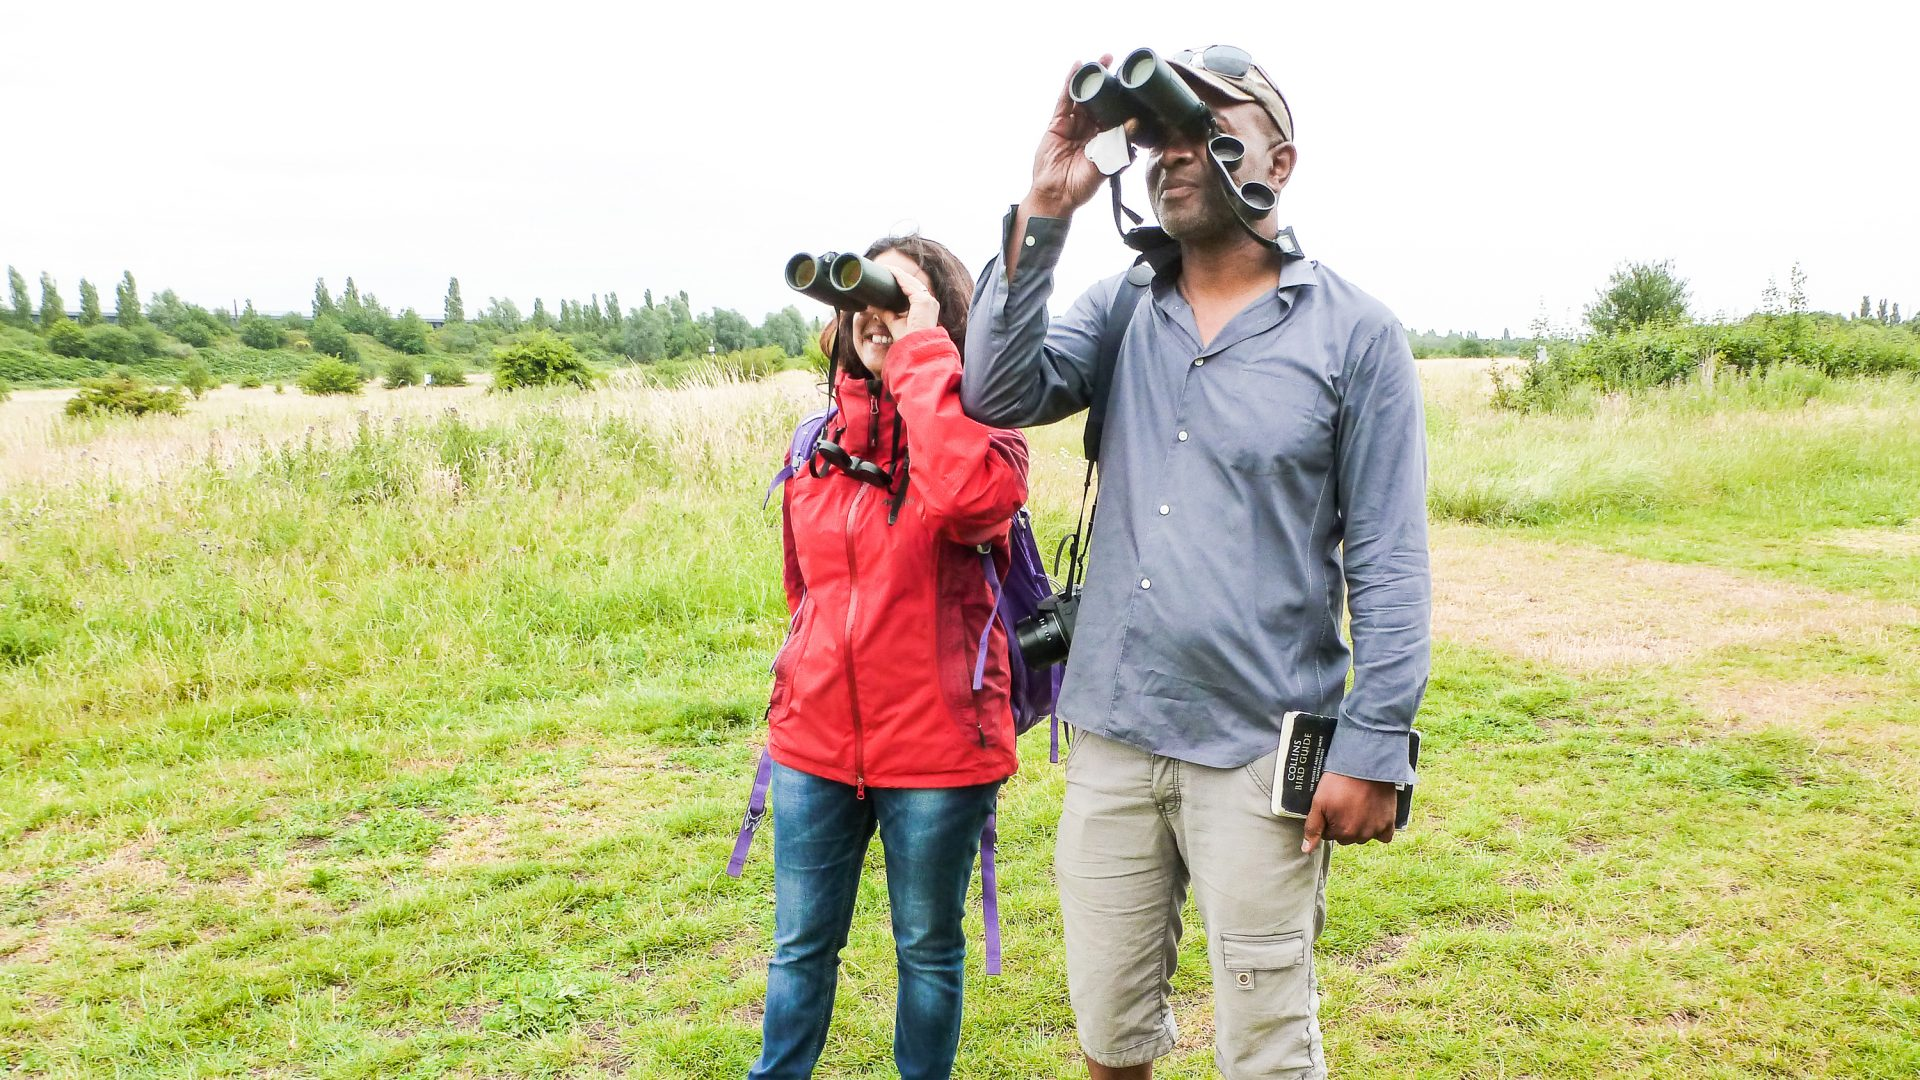 Experiencing nature: Jini and urban birder David Lindo birdwatching in Wormwood Scrubs, London